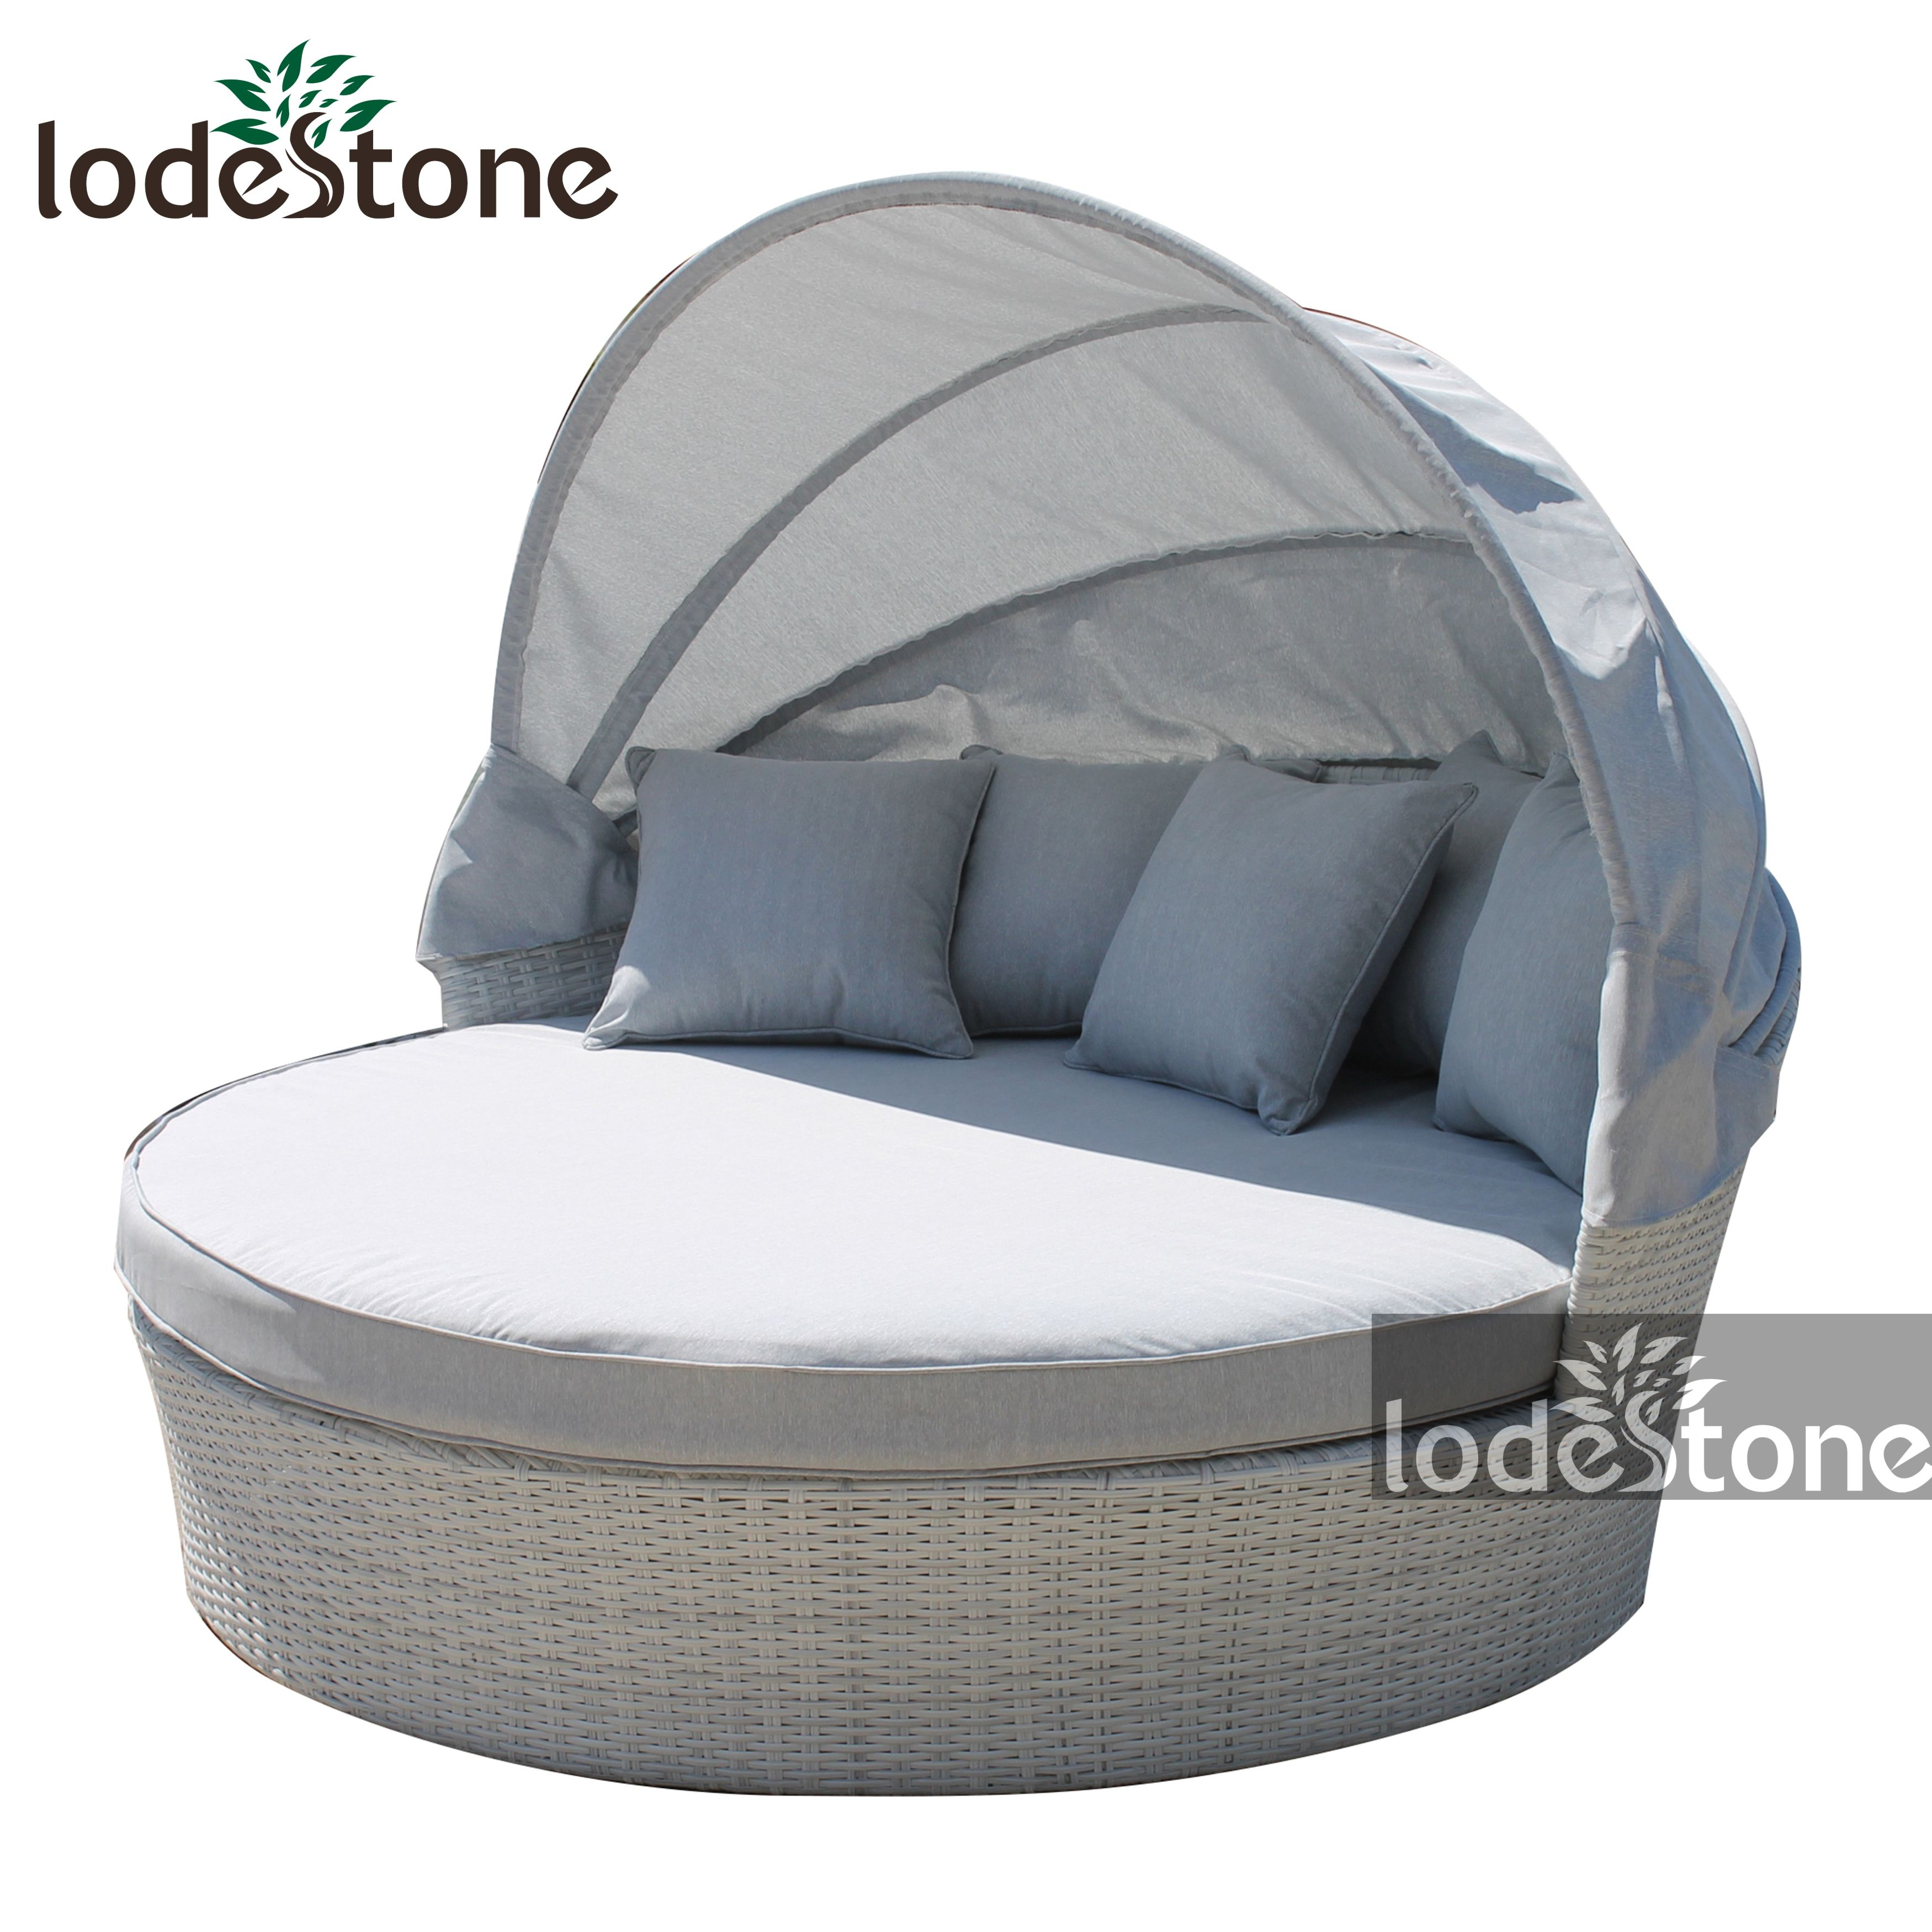 - Best Selling Daybed Outdoor Wicker Pool Round Sunbed With Canopy